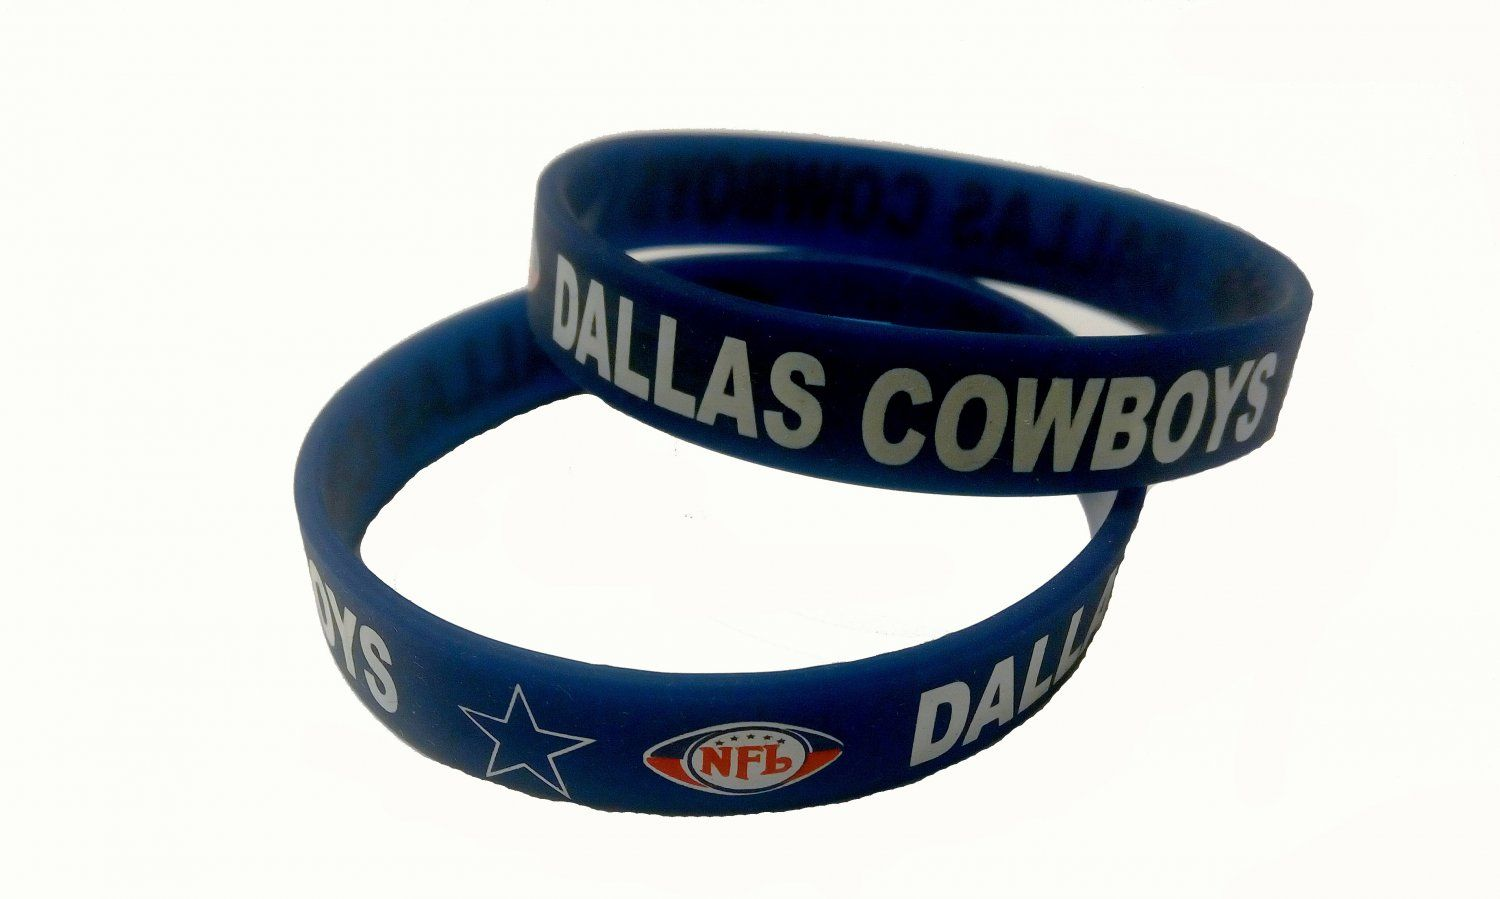 Dallas Cowboys Nfl Football Team Silicone Rubber Bracelet